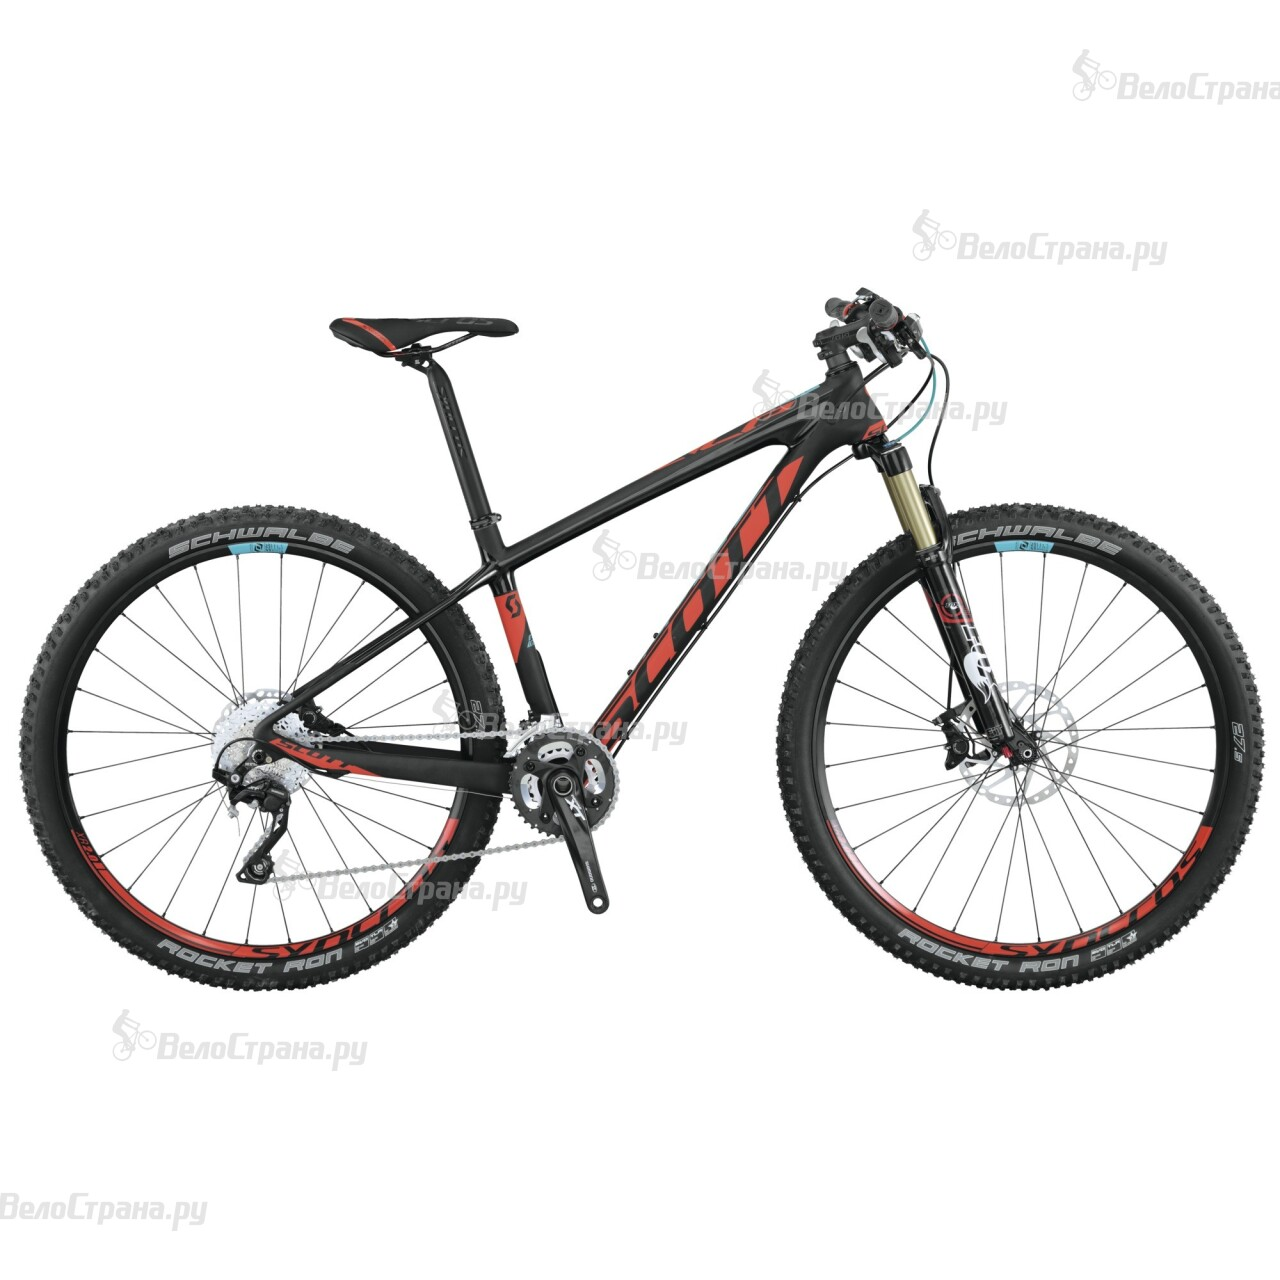 Велосипед Scott Contessa Spark 700 RC (2015) scott contessa genius 700 2016